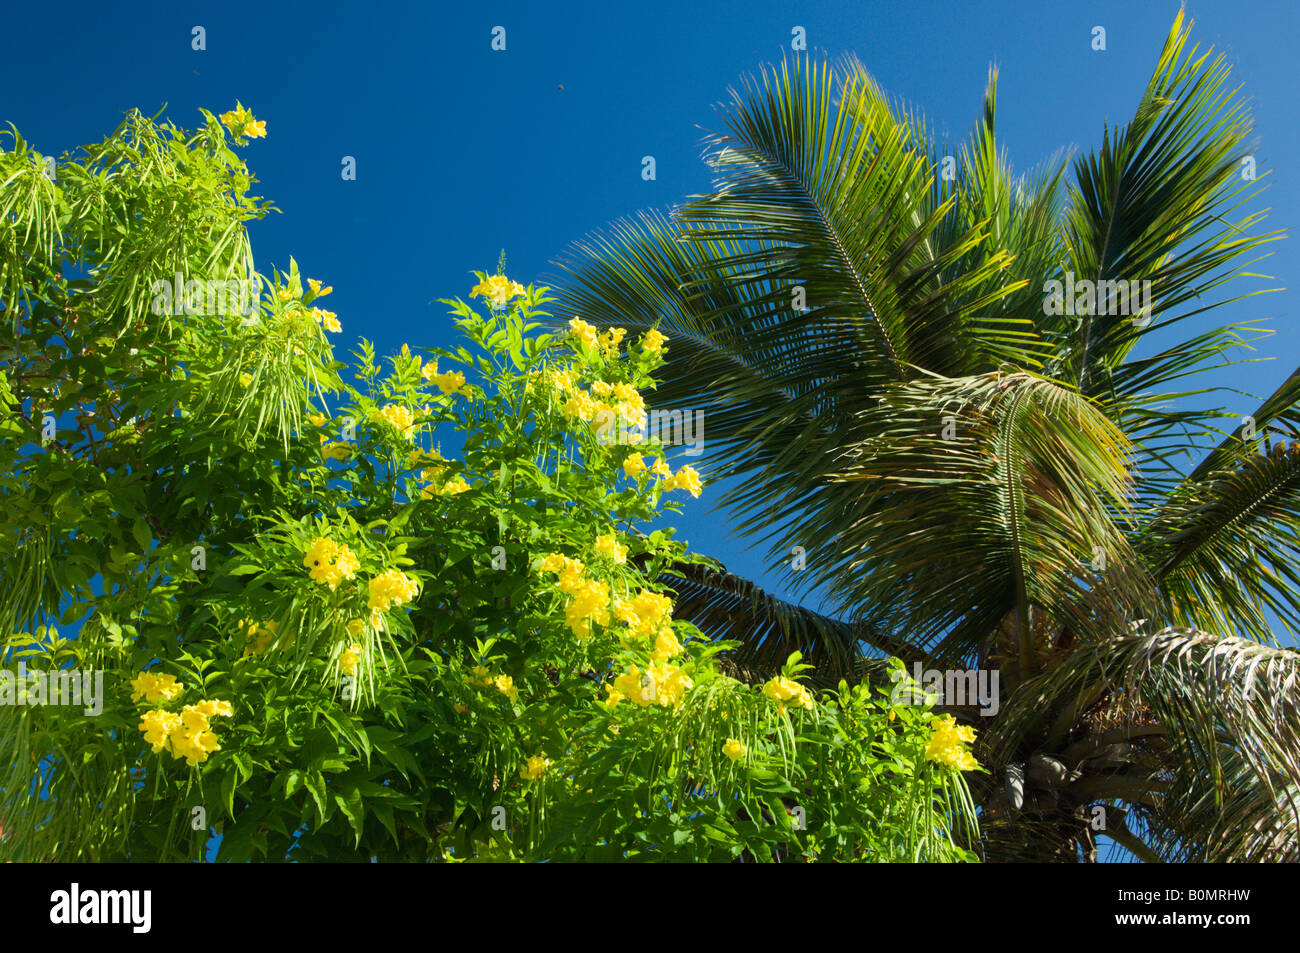 A palm tree with the yellow flowers of the tree in cockburn town a palm tree with the yellow flowers of the tree in cockburn town grand turk turks and caicos islands mightylinksfo